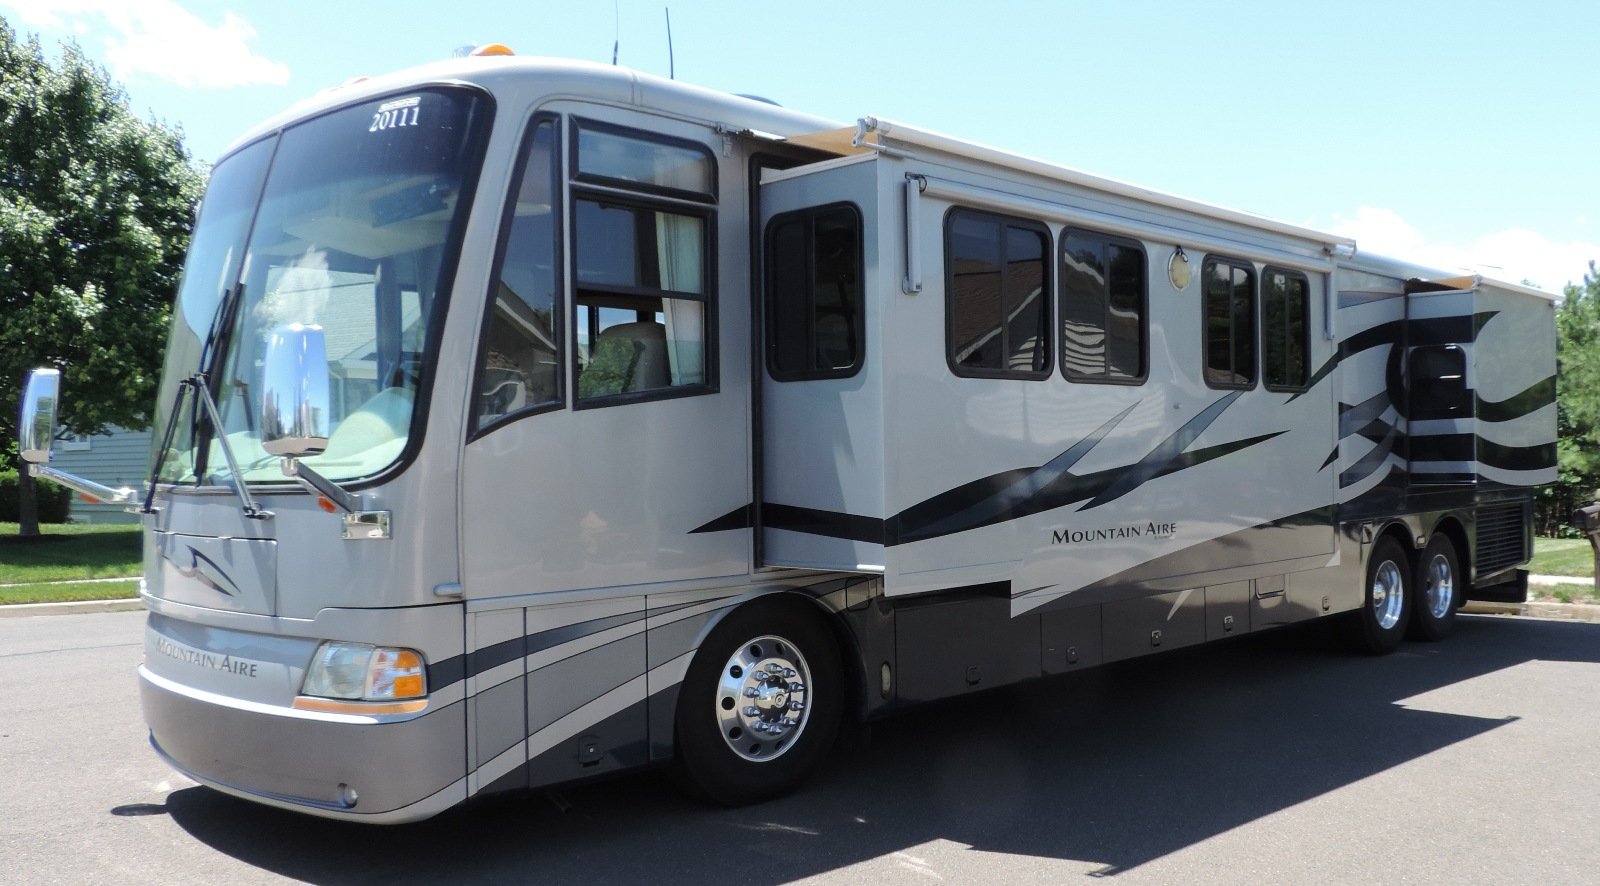 Motorhomes For Sale By Owner >> 2004 Newmar Mountain Aire 4301 | Used Motorhomes for sale